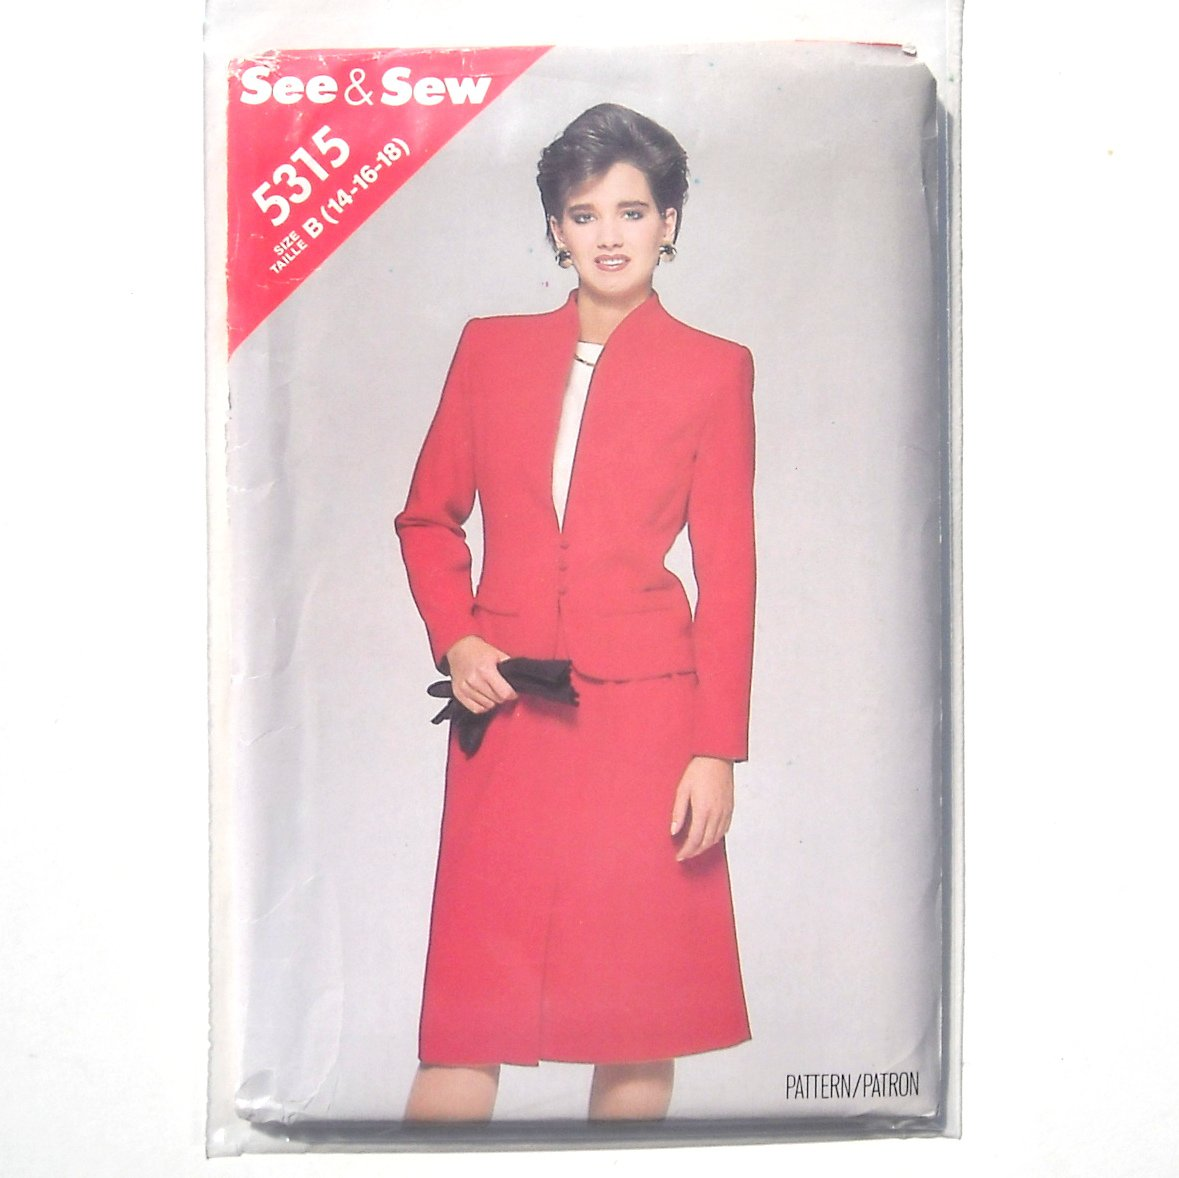 Butterick Sewing Pattern 5315 Size 14 - 18 See Sew Jacket and Skirt